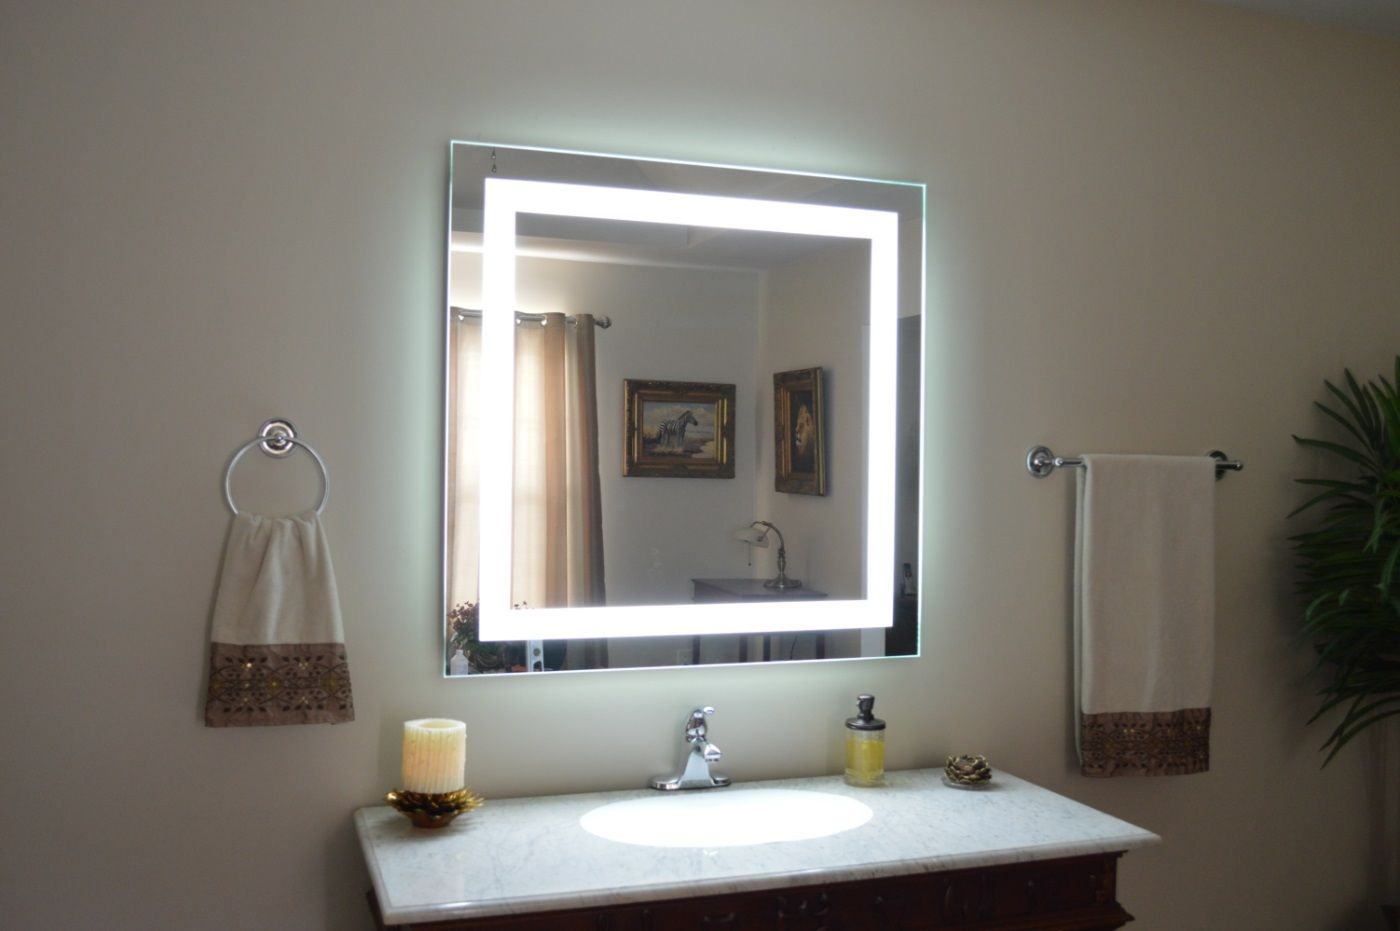 Wall Mounted Mirror With Lights see the difference with a wall mounted light up mirror | warisan